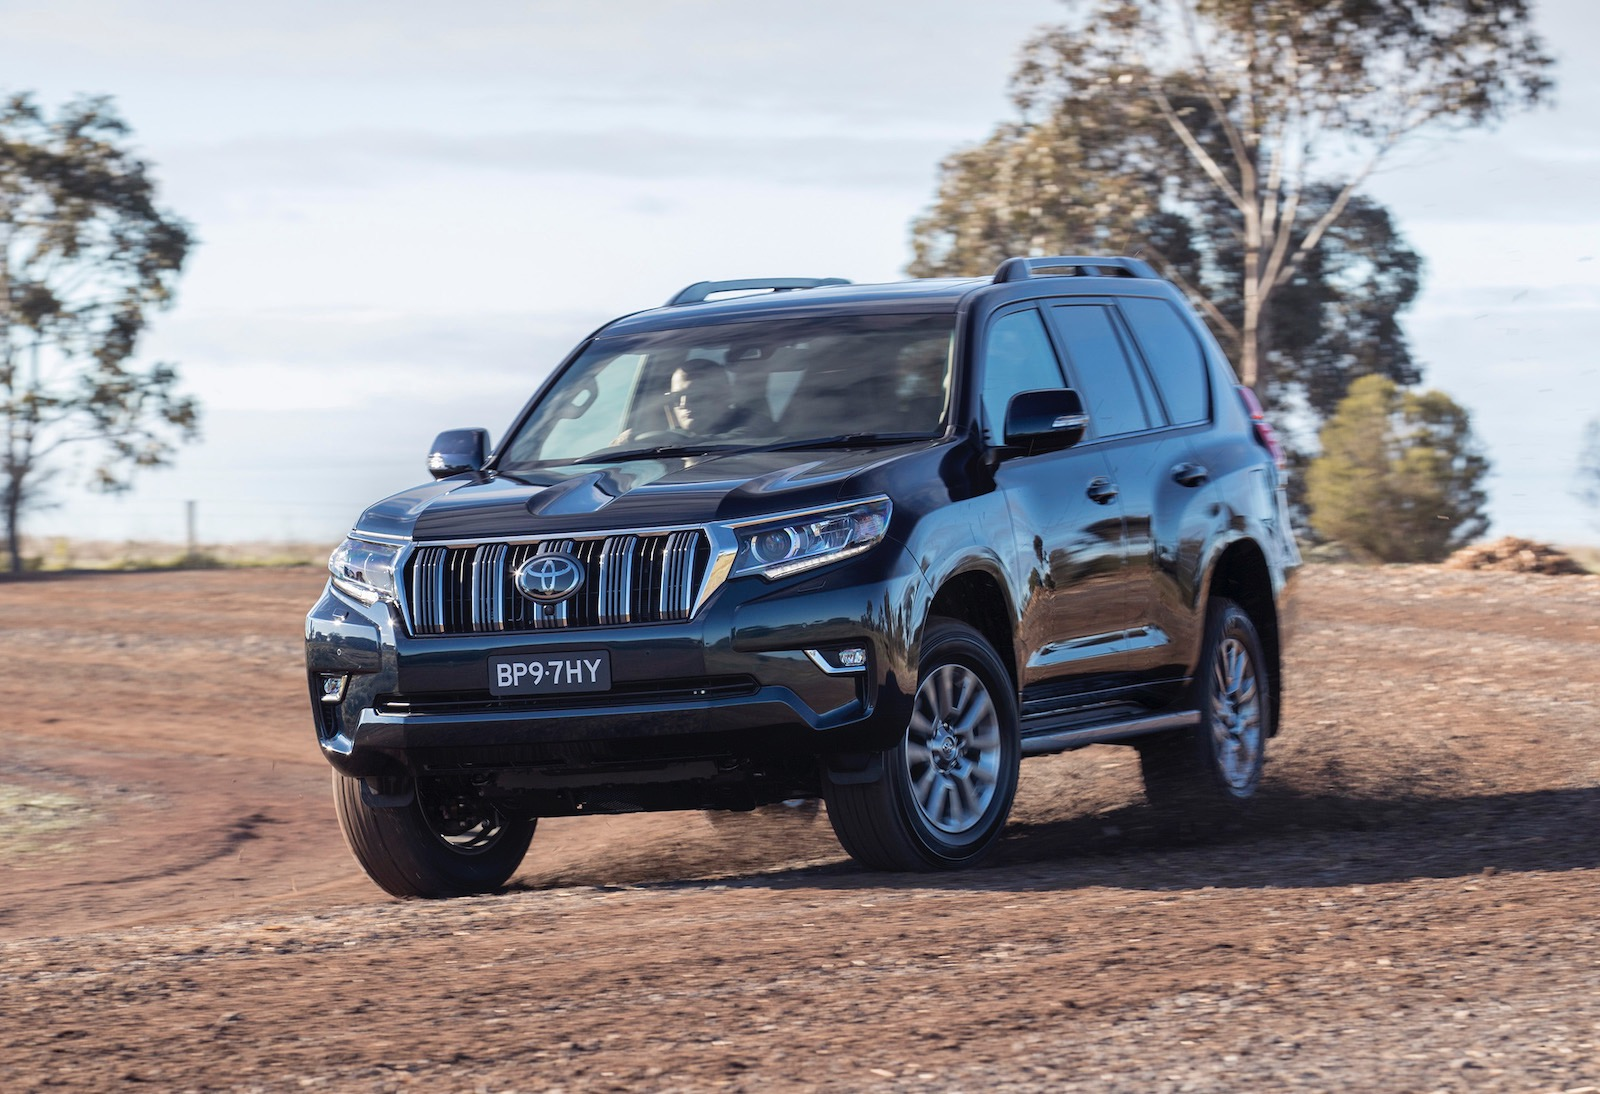 2018 toyota prado revealed on sale in australia in. Black Bedroom Furniture Sets. Home Design Ideas